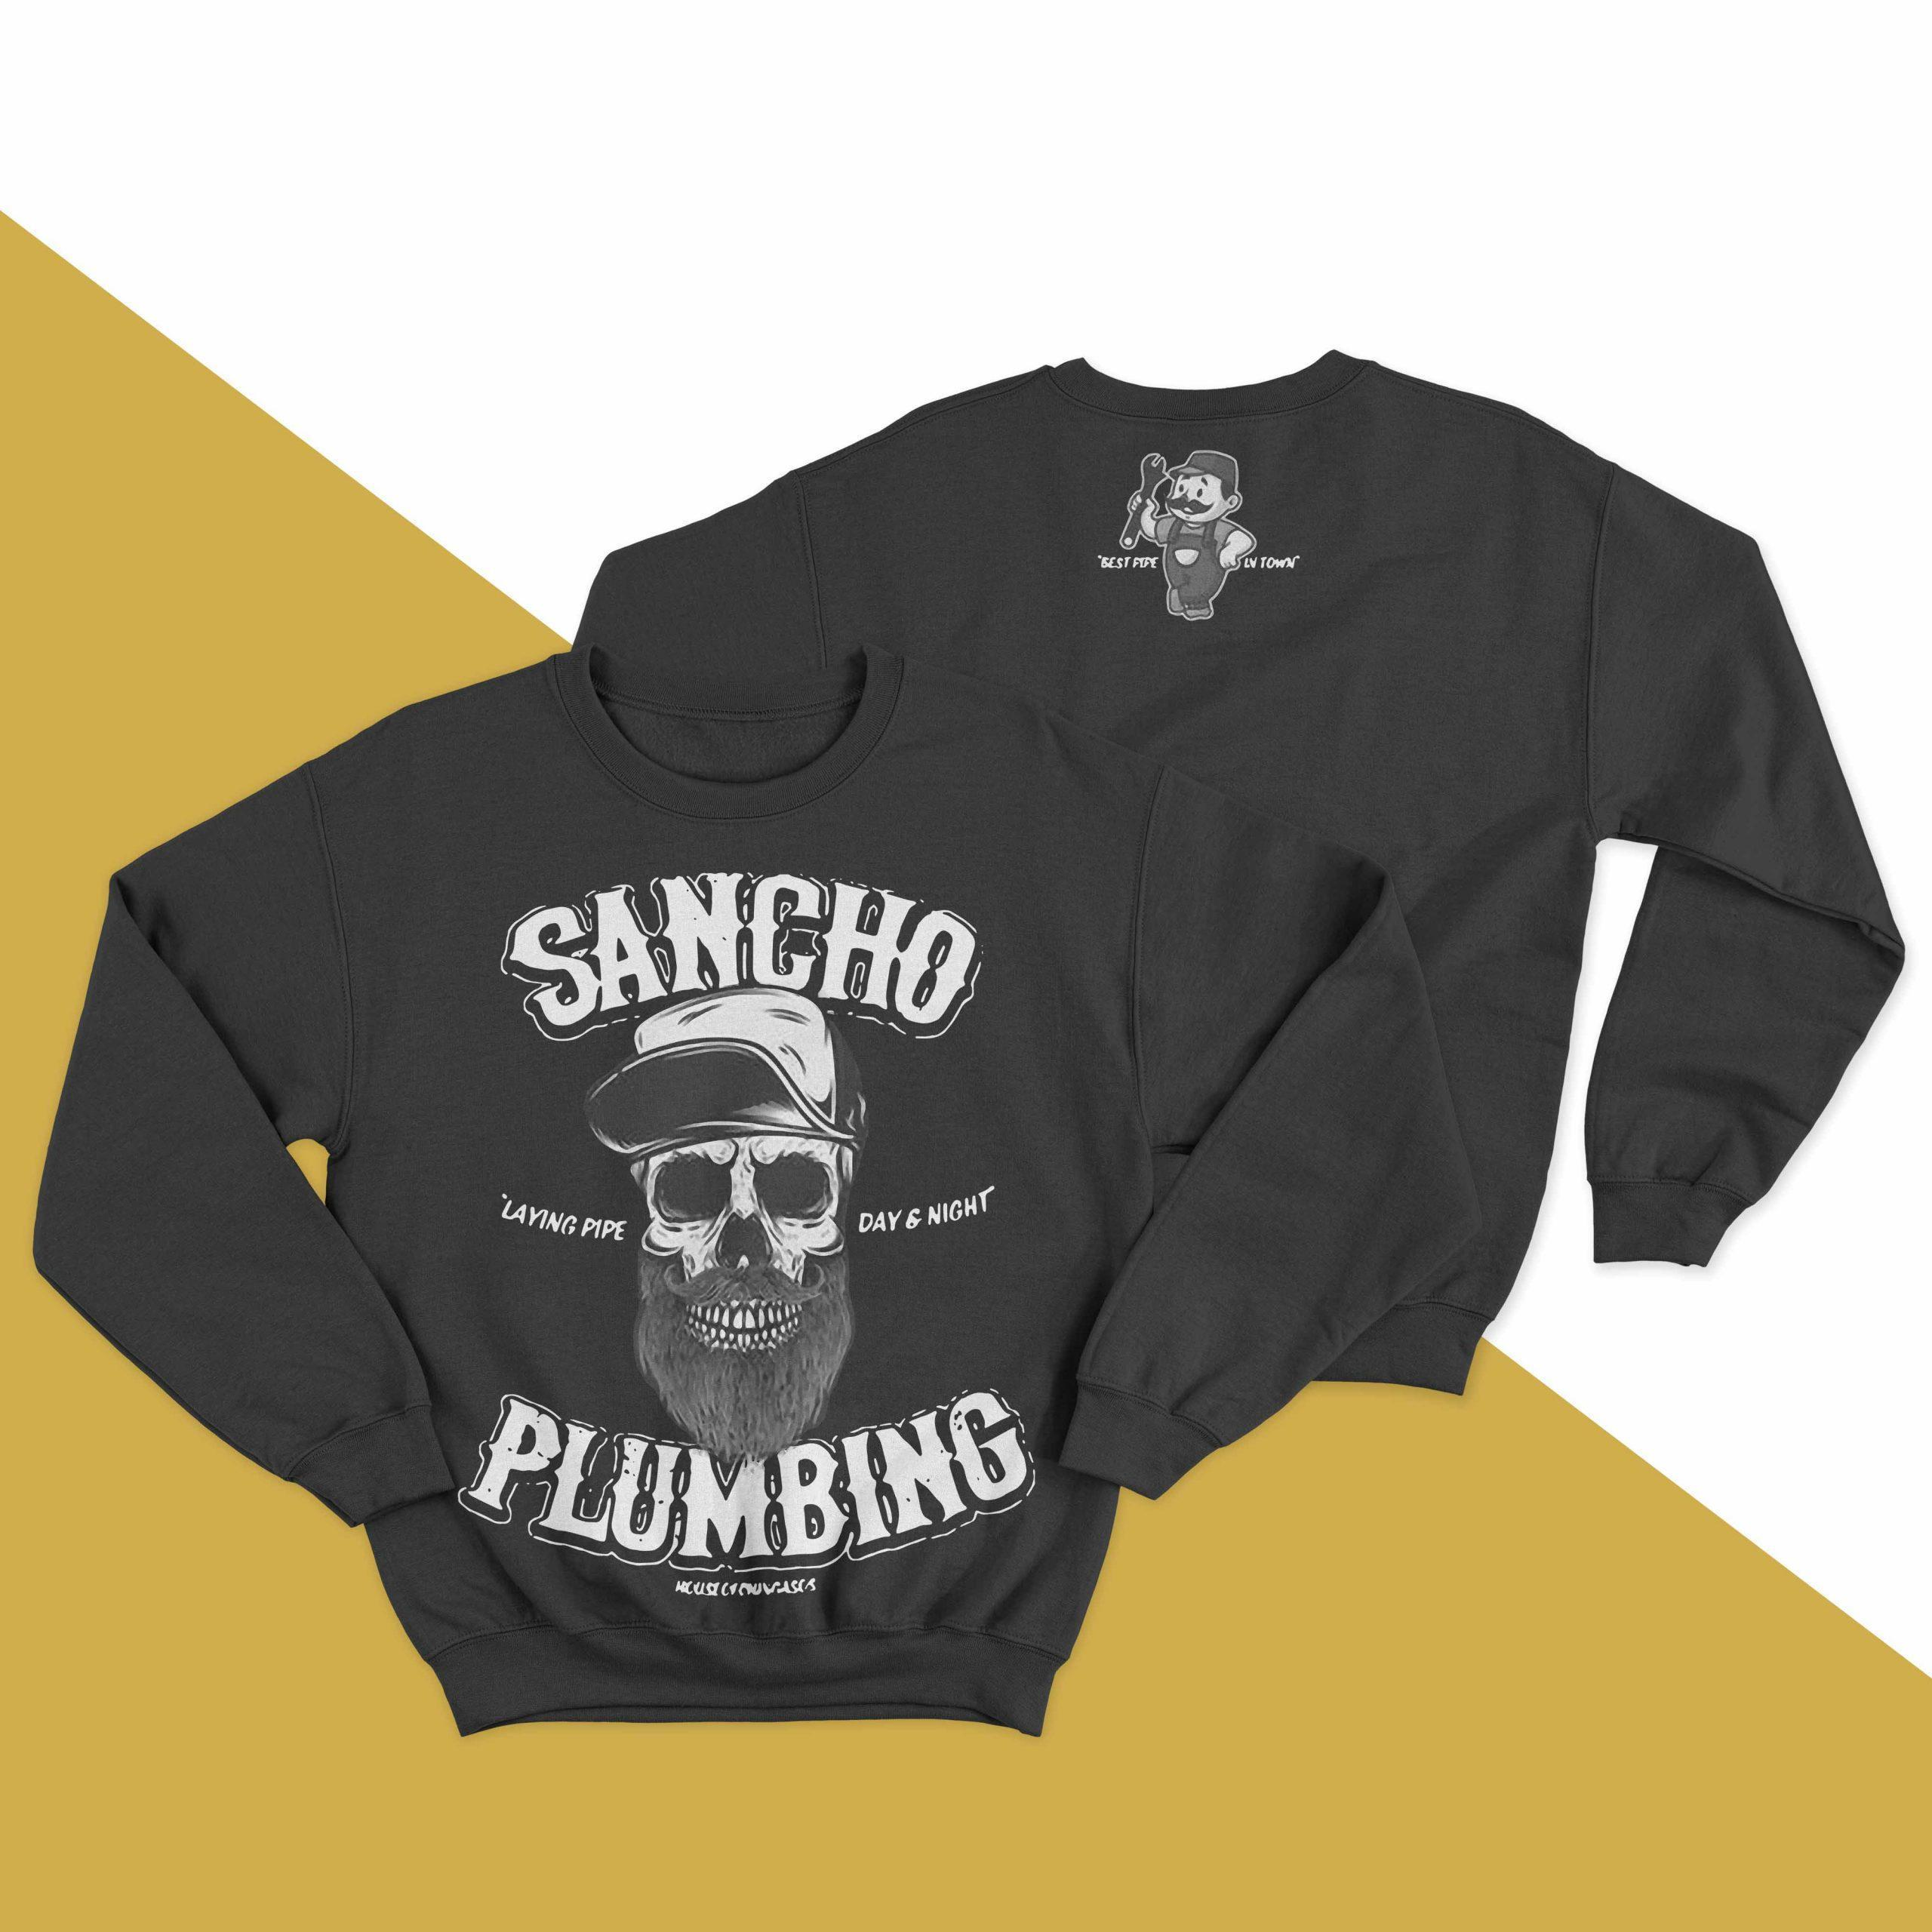 Sancho Plumbing Laying Pipe Day And Night Sweater